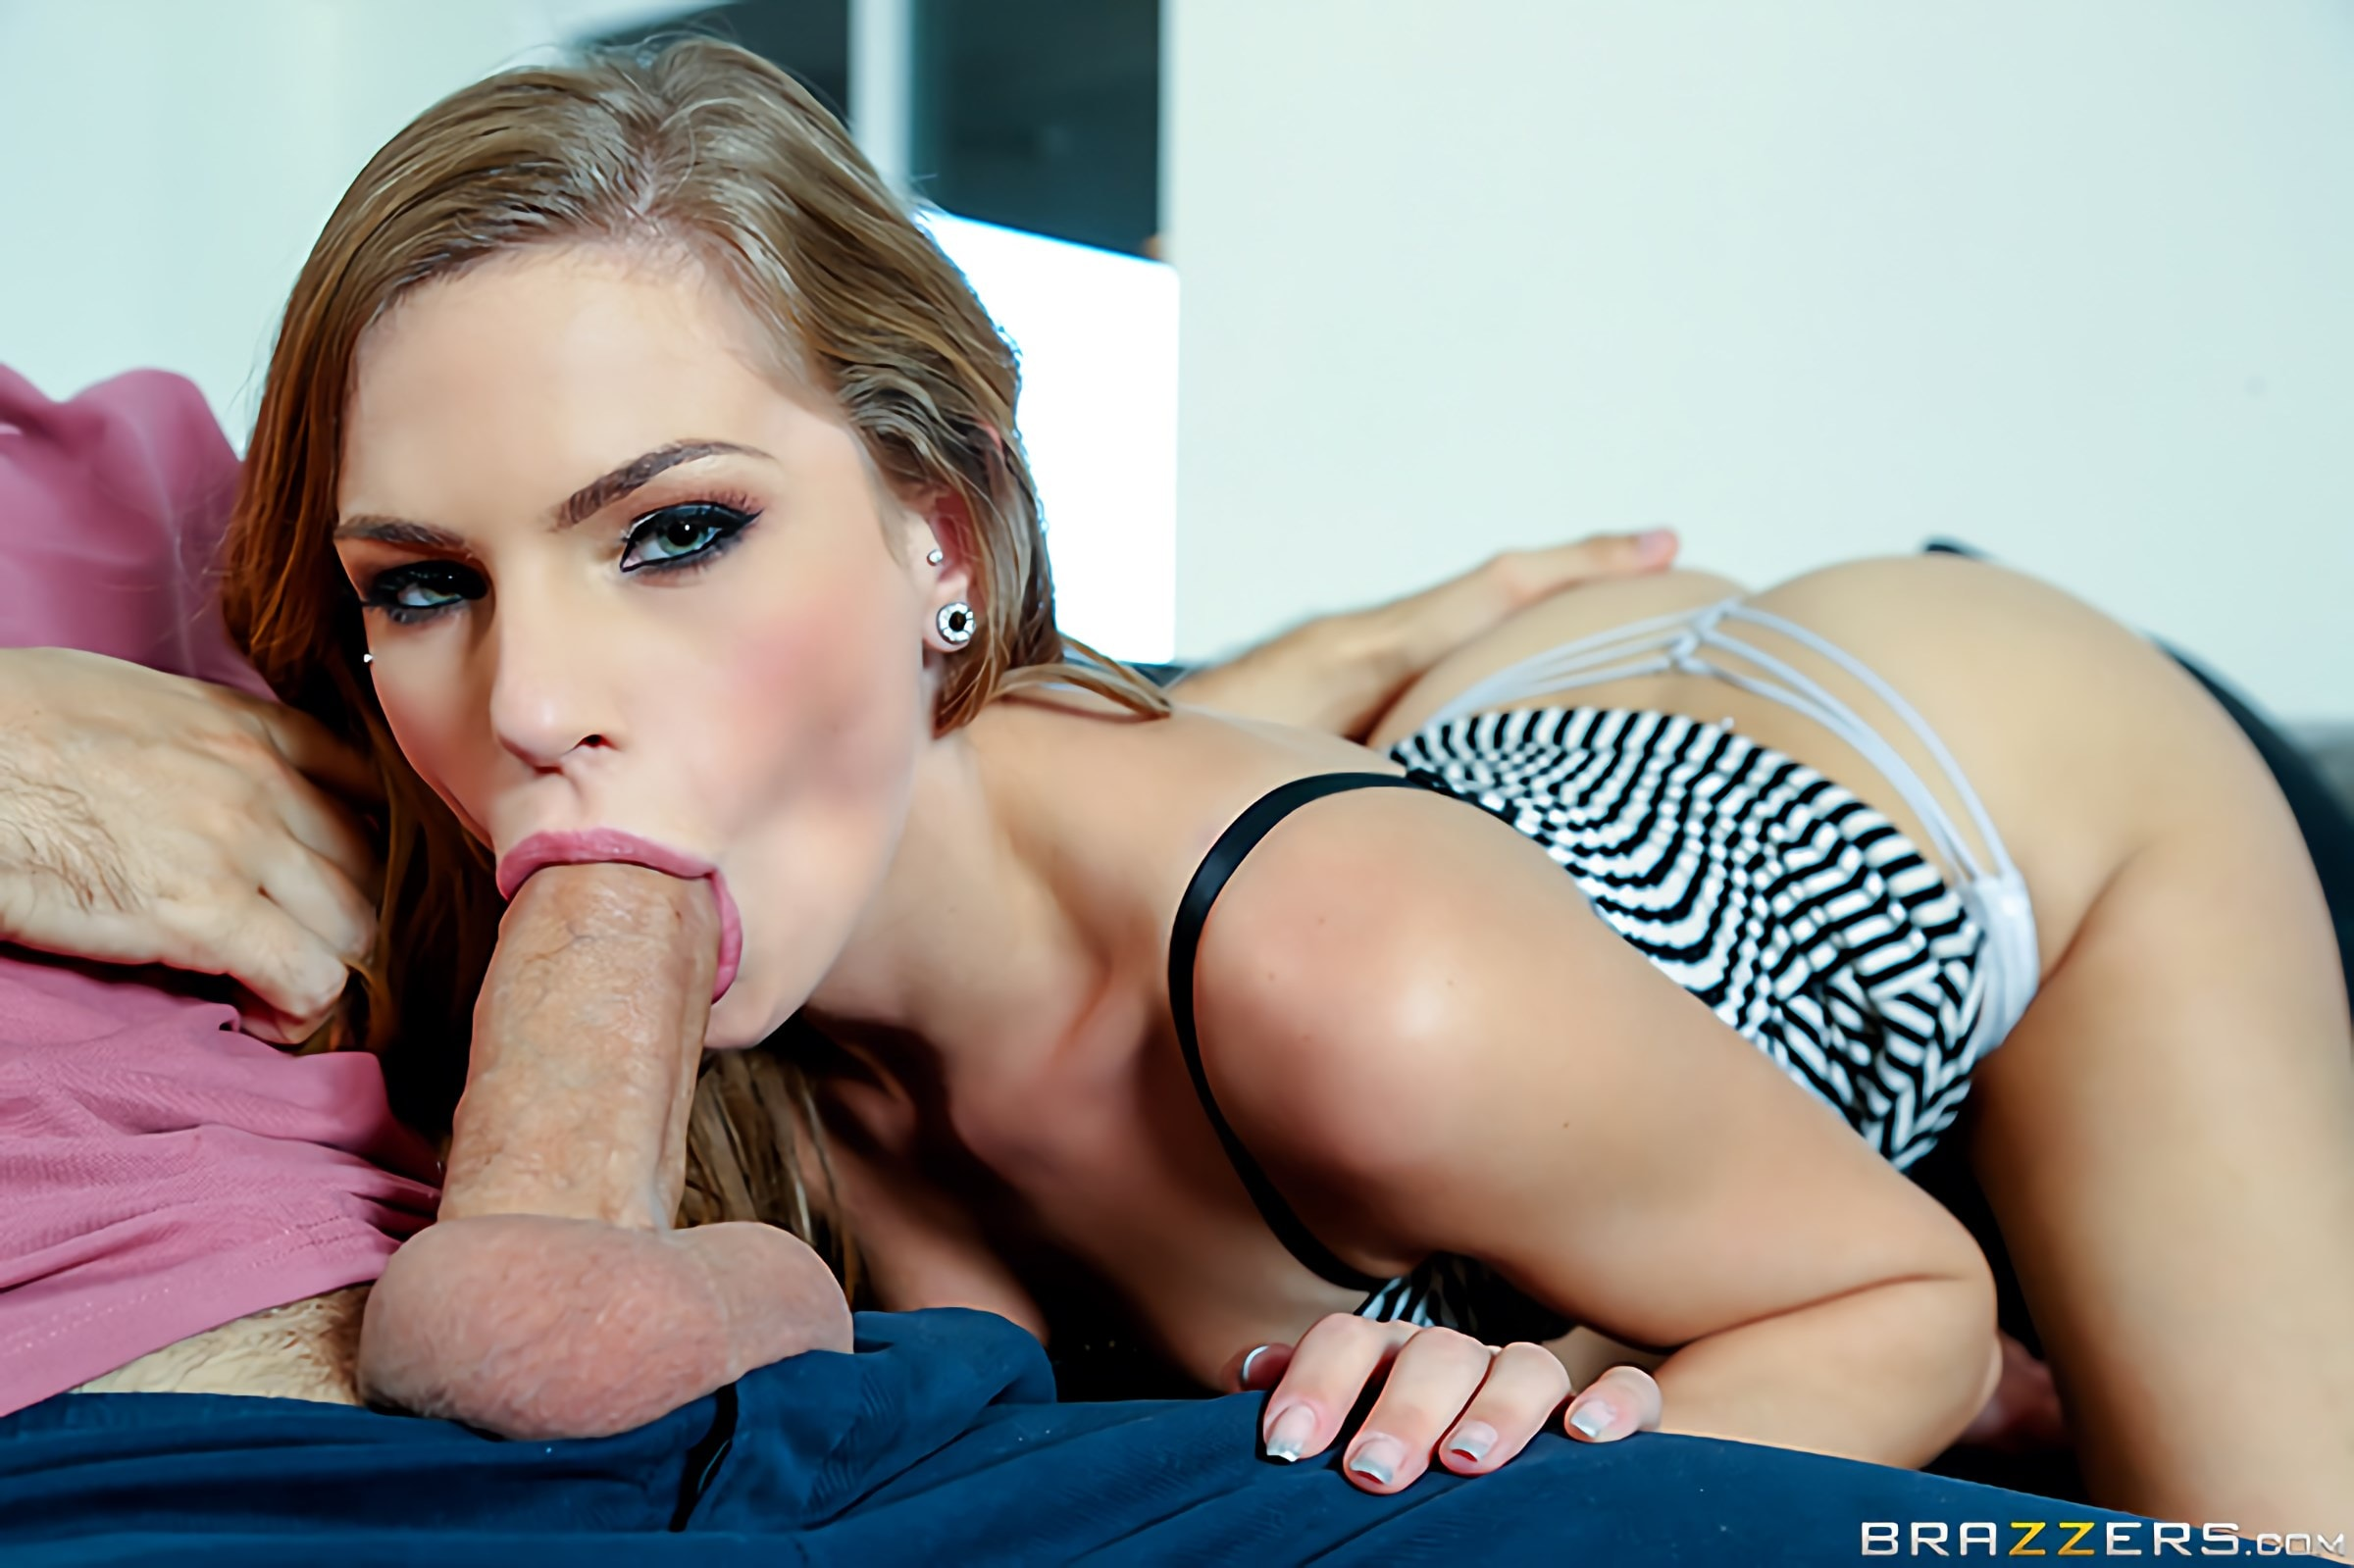 Brazzers 'Netdicks and Chill' starring Sydney Cole (Photo 3)